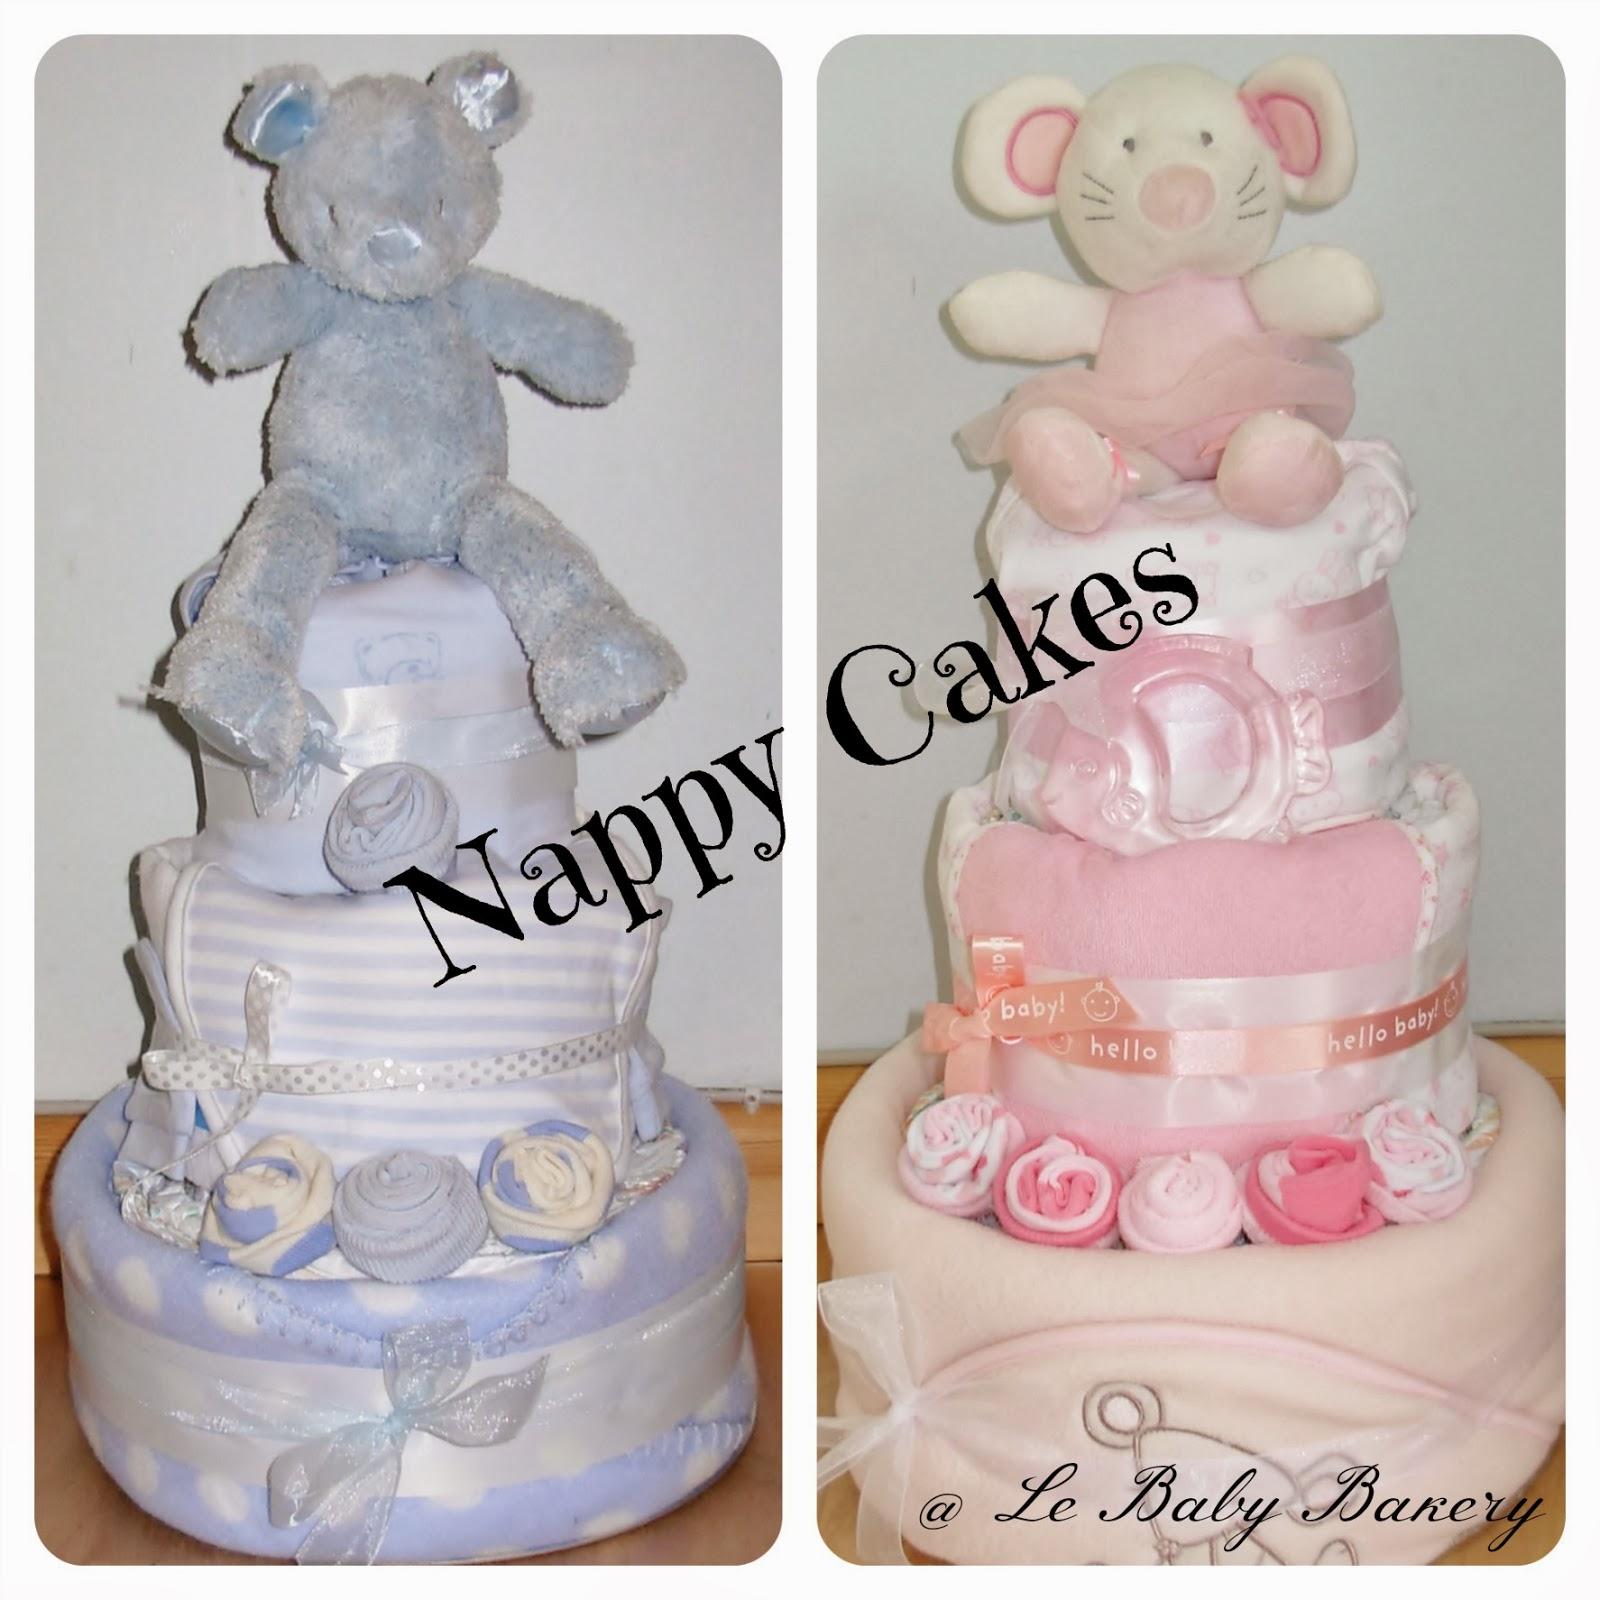 http://lebabybakery.blogspot.co.uk/p/nappy-cakes.html